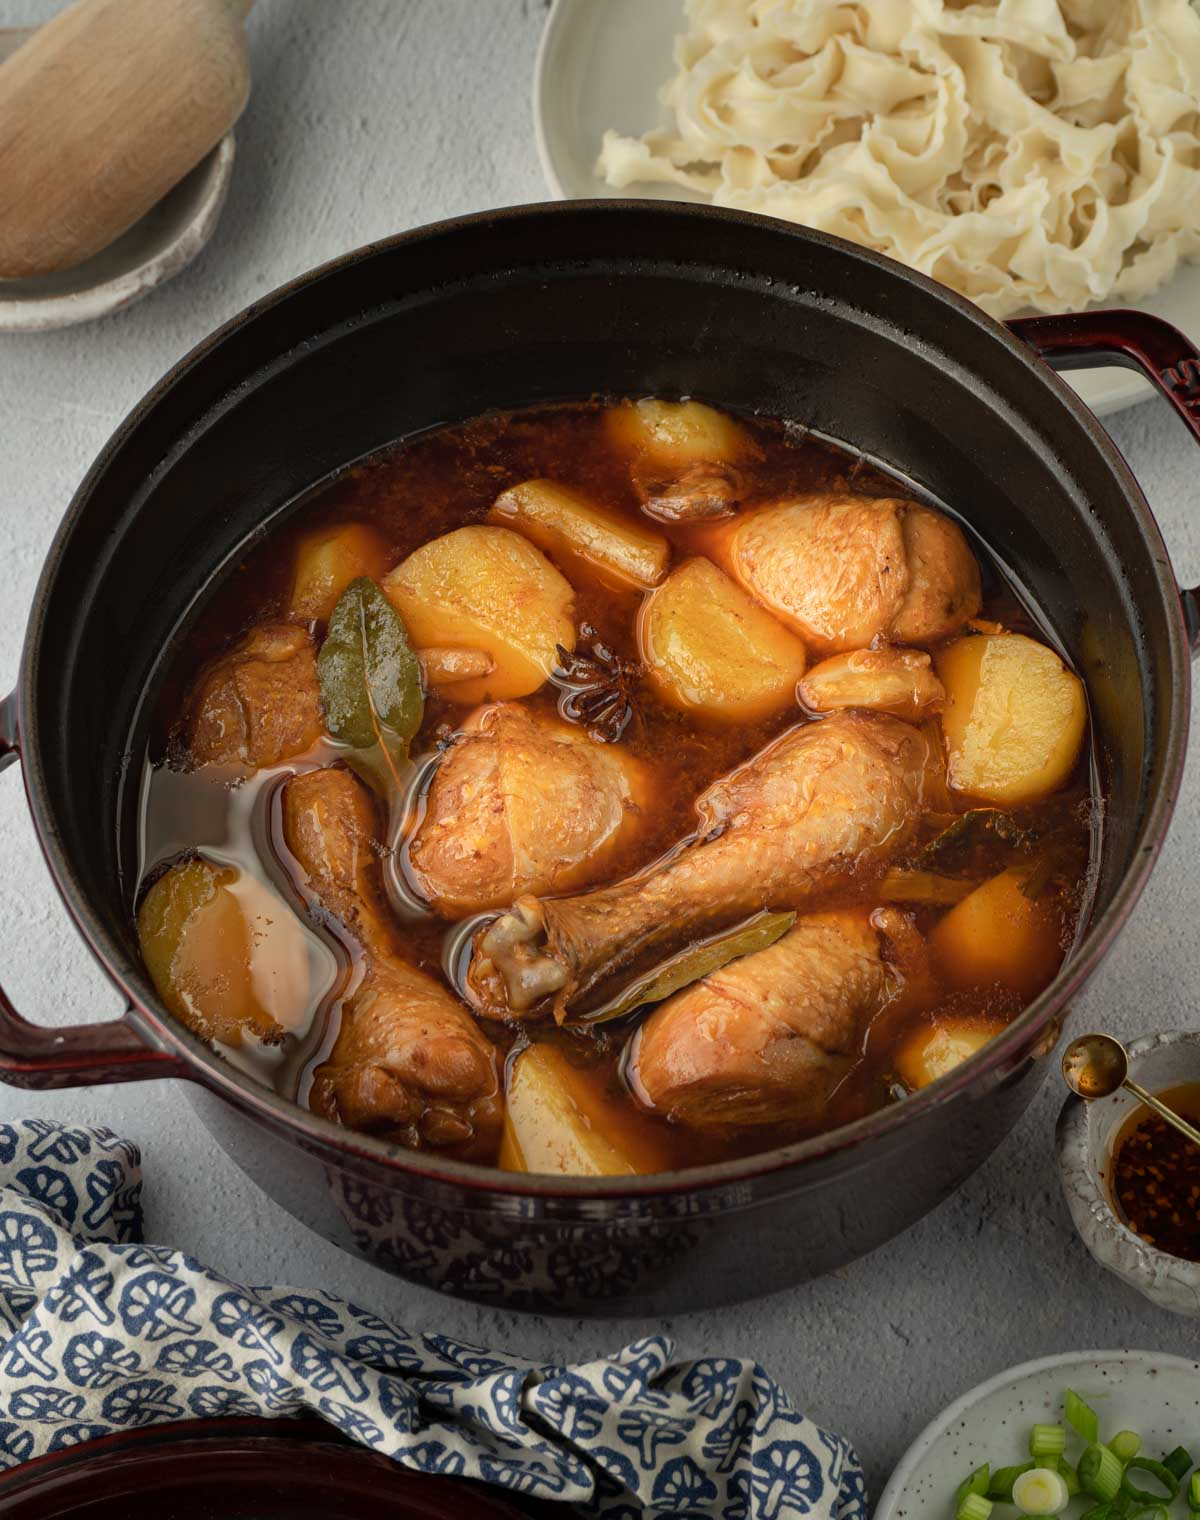 A pot of Chinese chicken stew with potatoes with a plate of cooked noodles on the side.